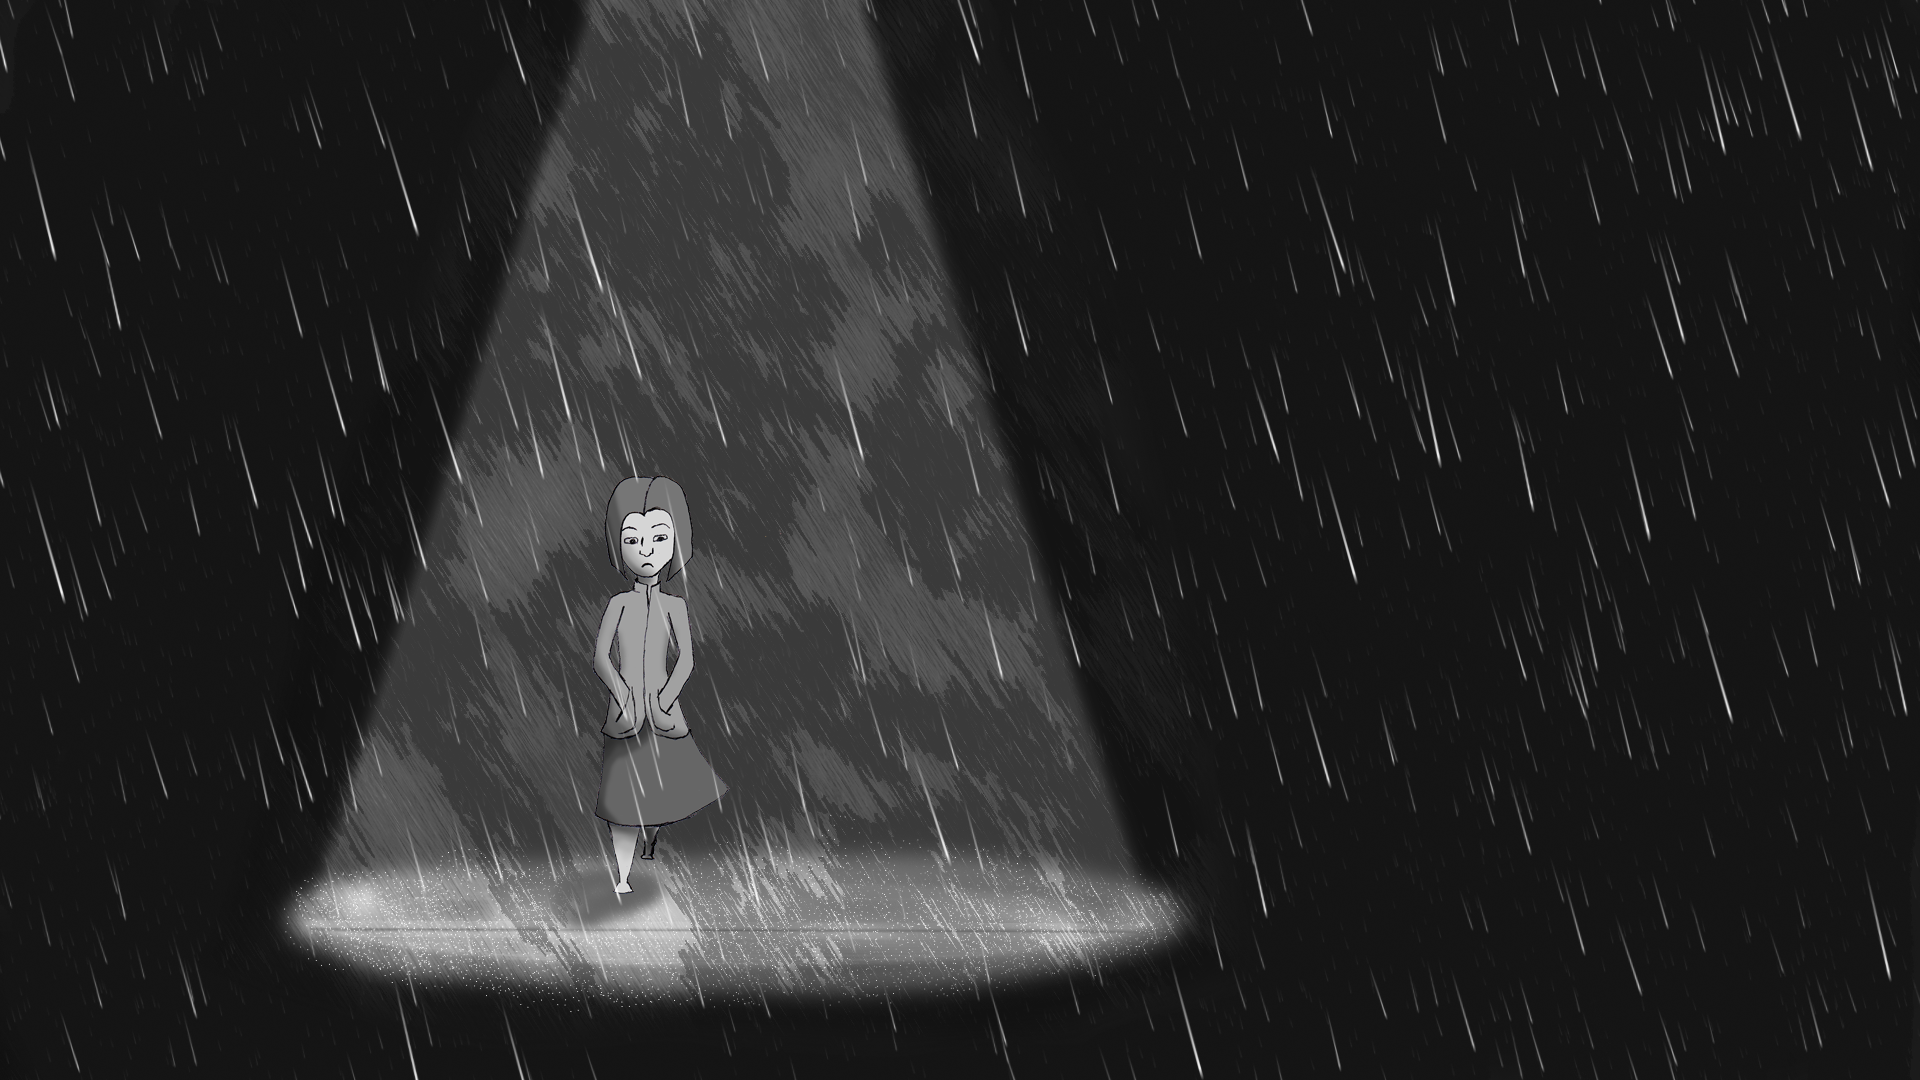 In the Rain - image 1 - student project